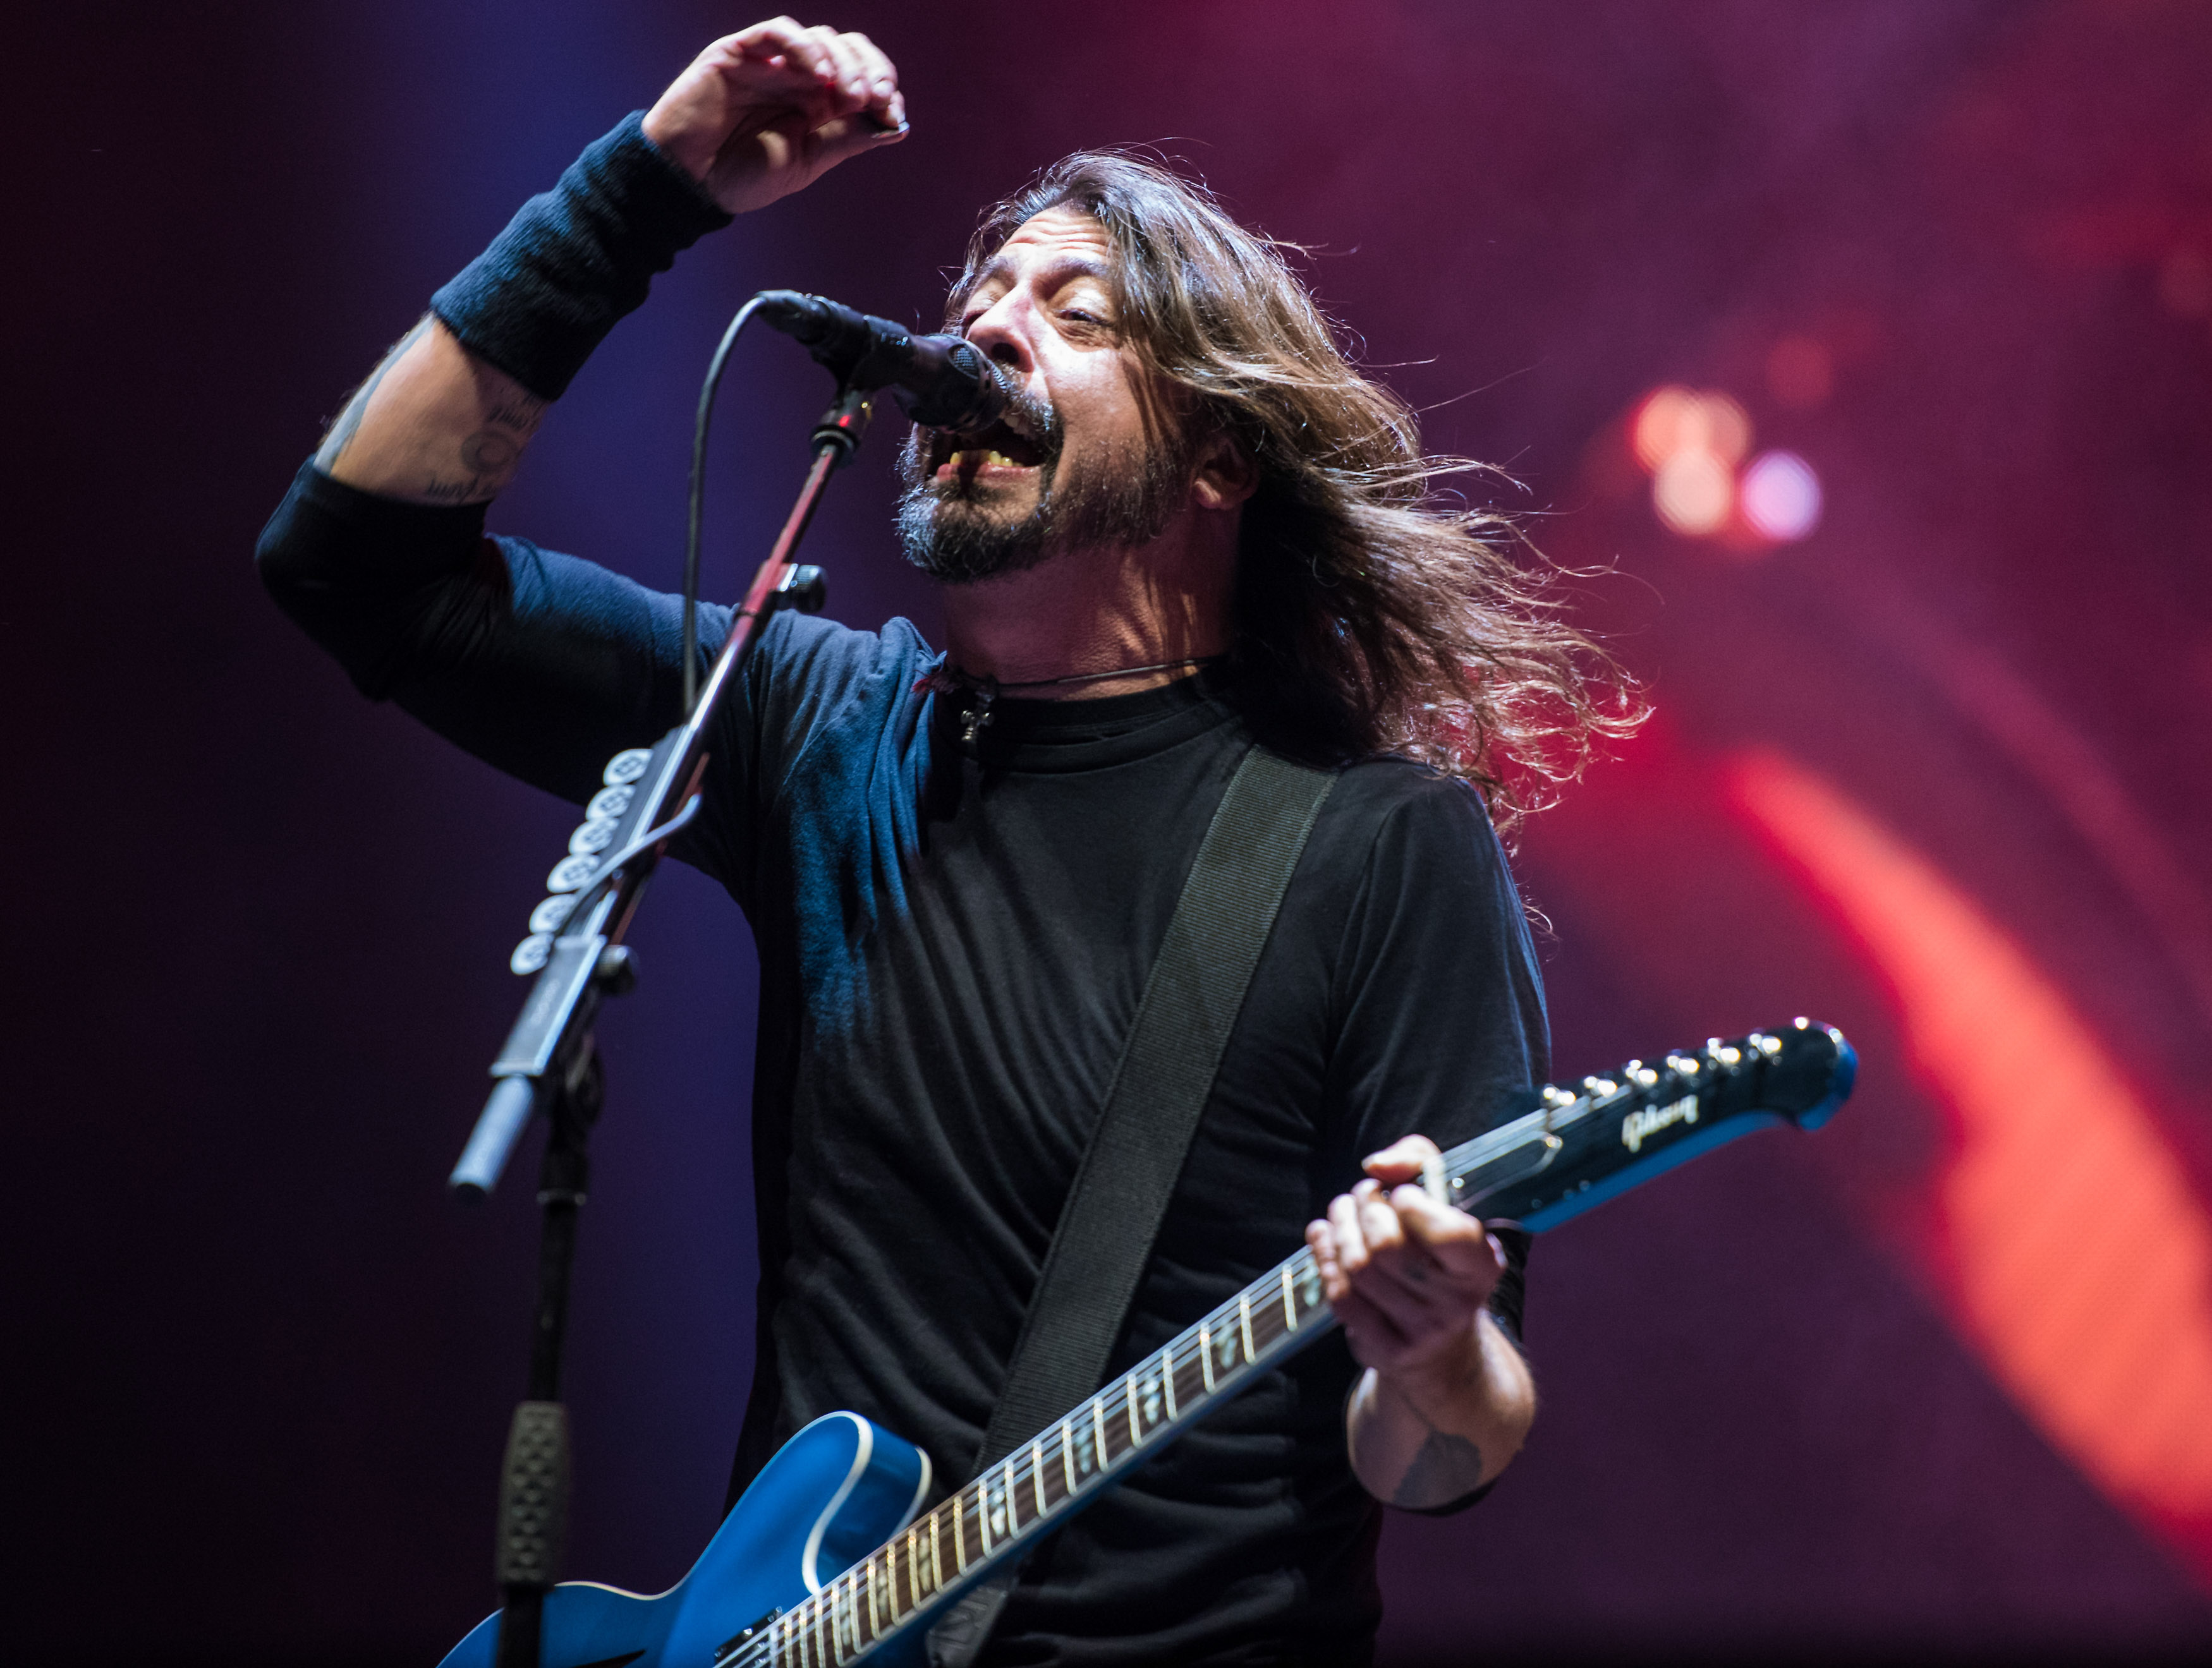 foofighters davidbrendanhall 05 Coachella's 2018 Lineup: One Day Later